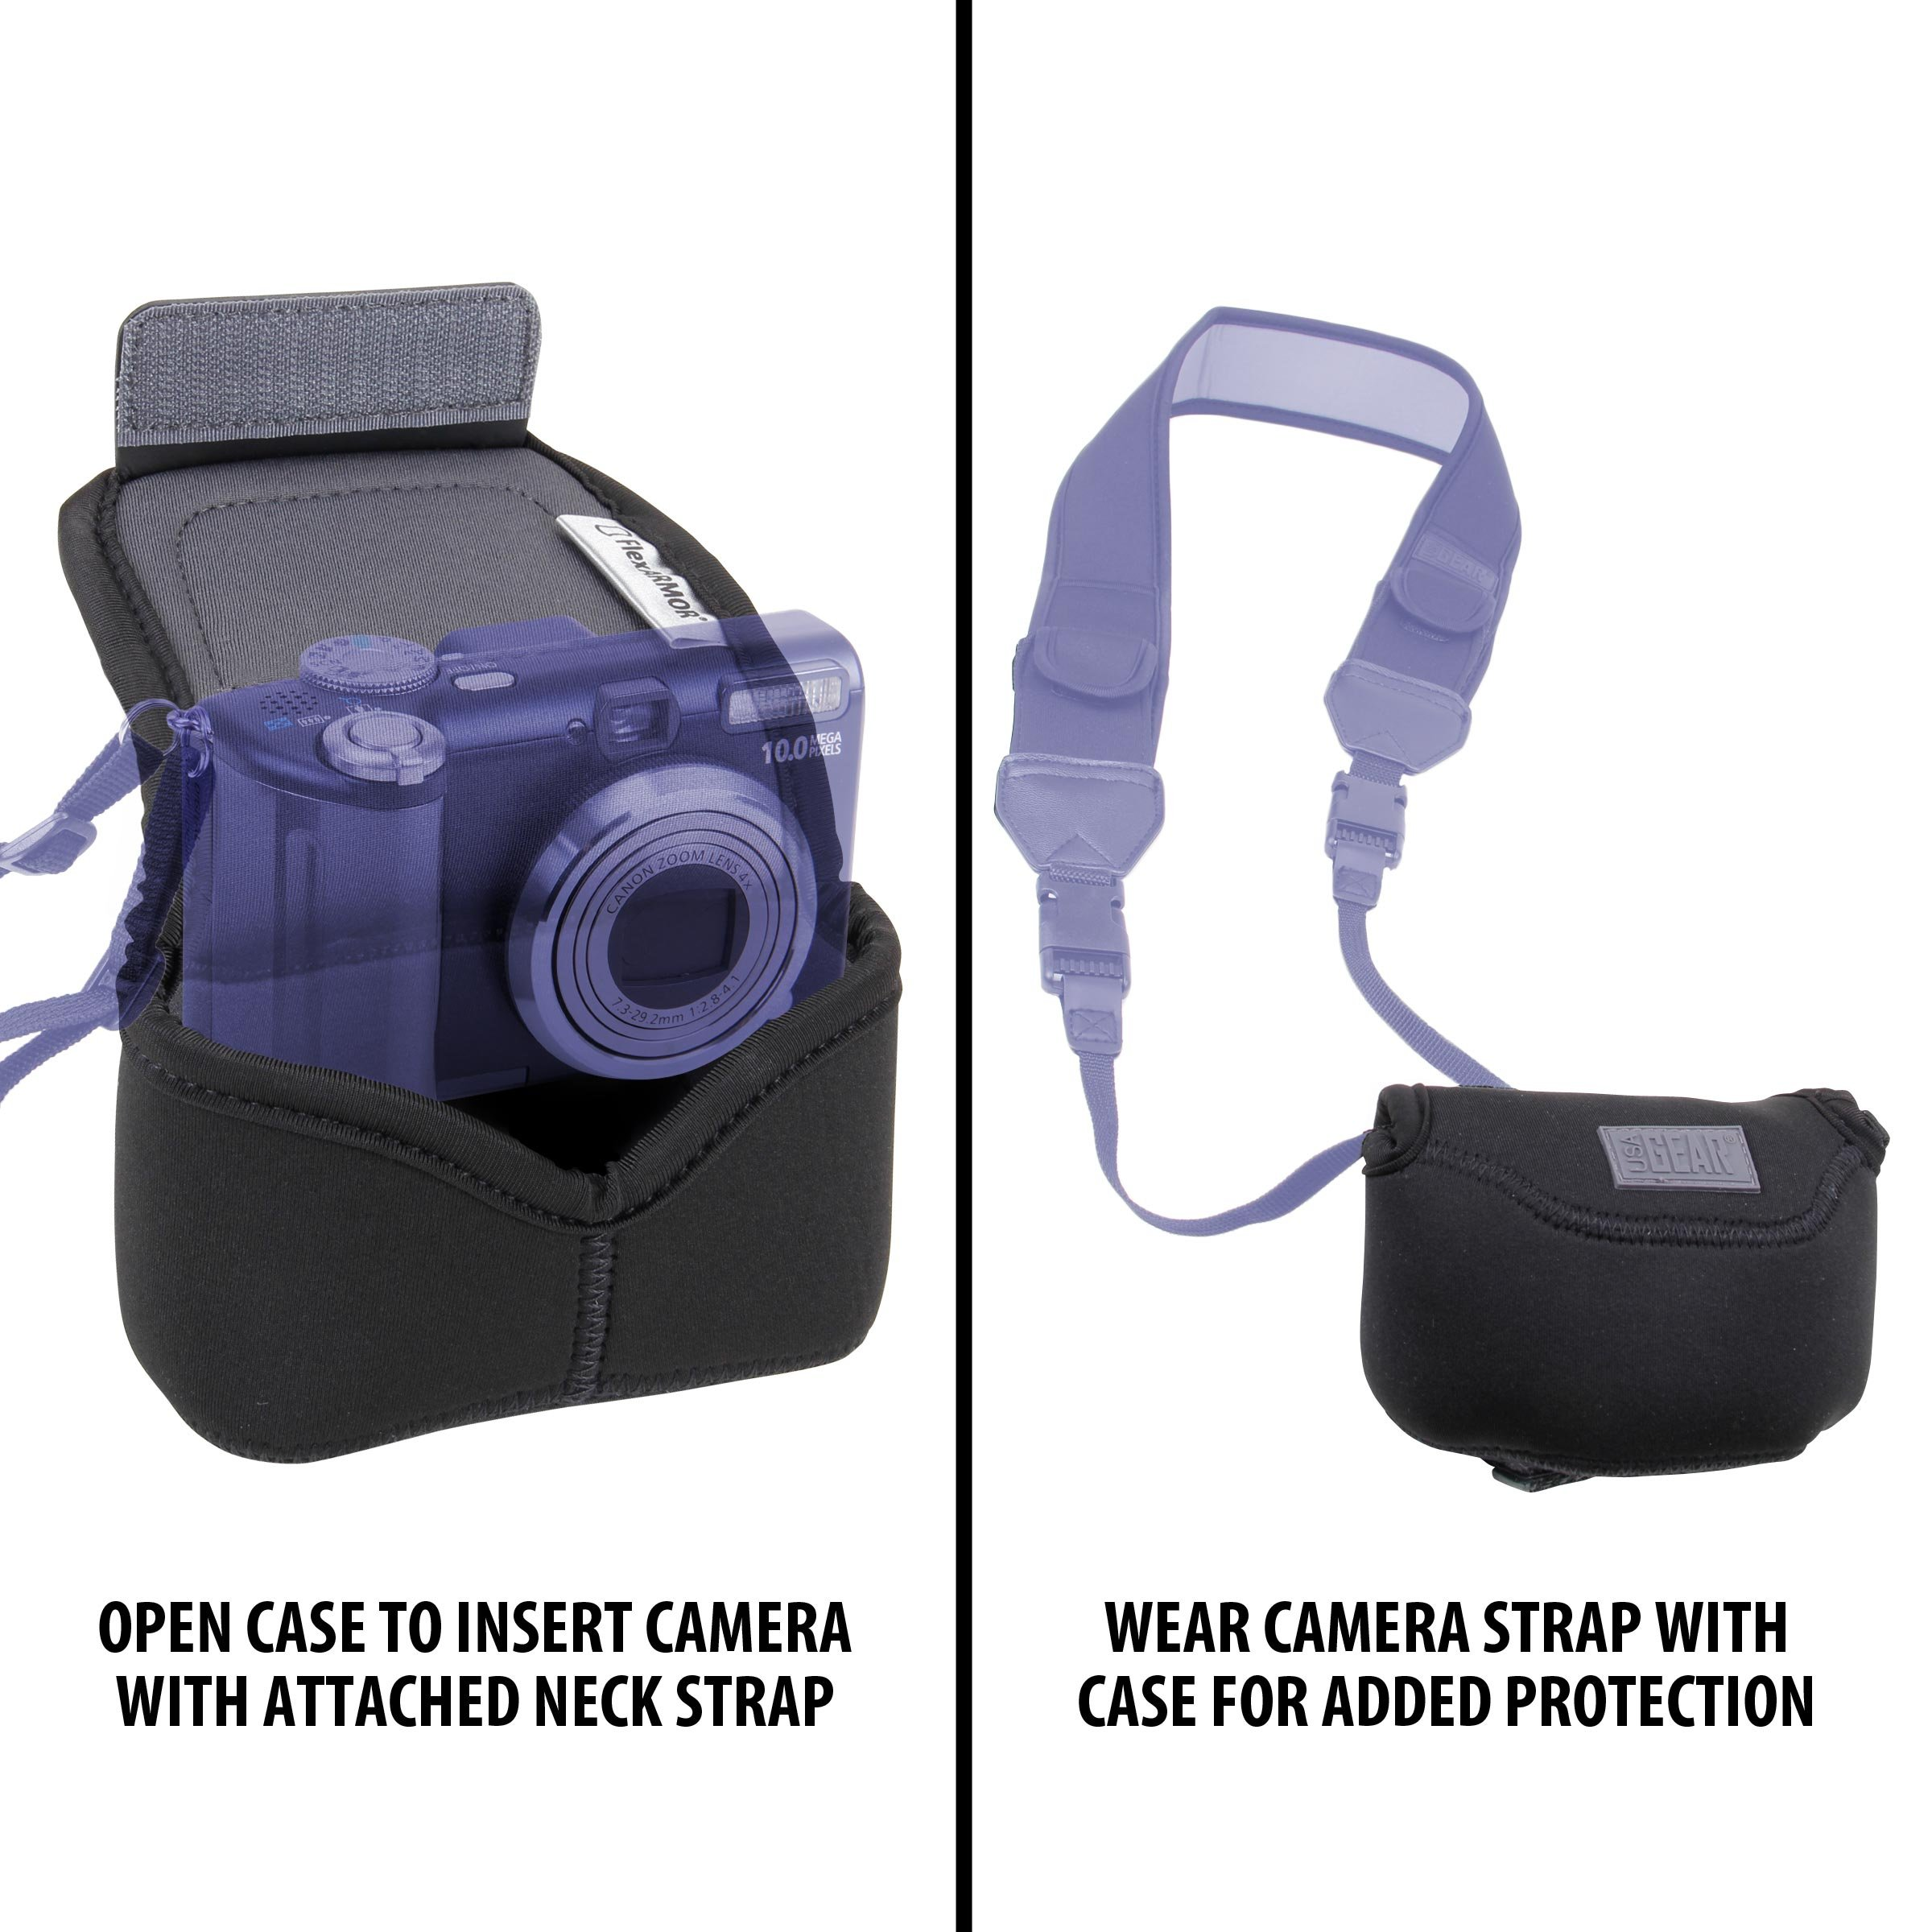 Usa Gear Digital Camera Case For Panasonic Lumix Dmc Zs100 Tz100 Lx10 Black Lx100 Dc Zs70 And More Compact Sleeve With Padded Protective Neoprene